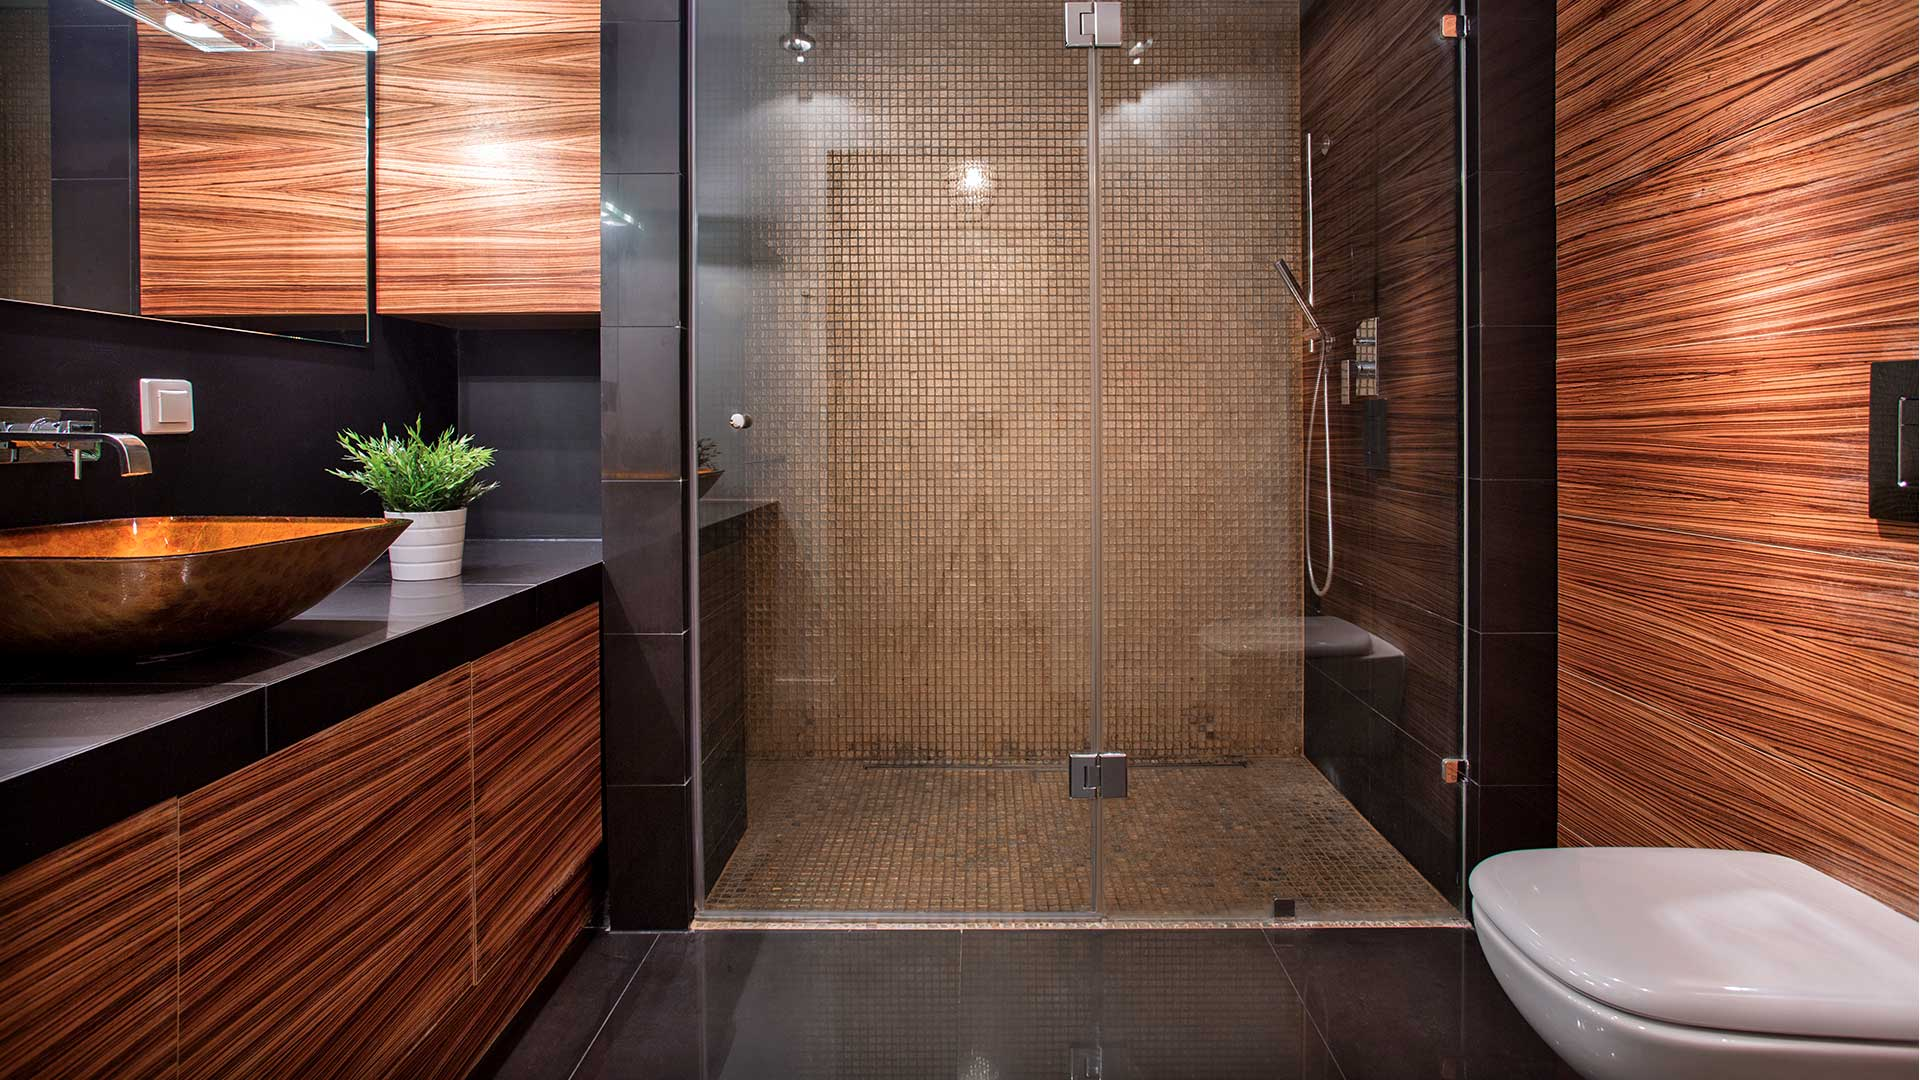 Bathroom Remodel Kennewick Wa home | kennewick kitchen remodeling, bathroom remodeling and